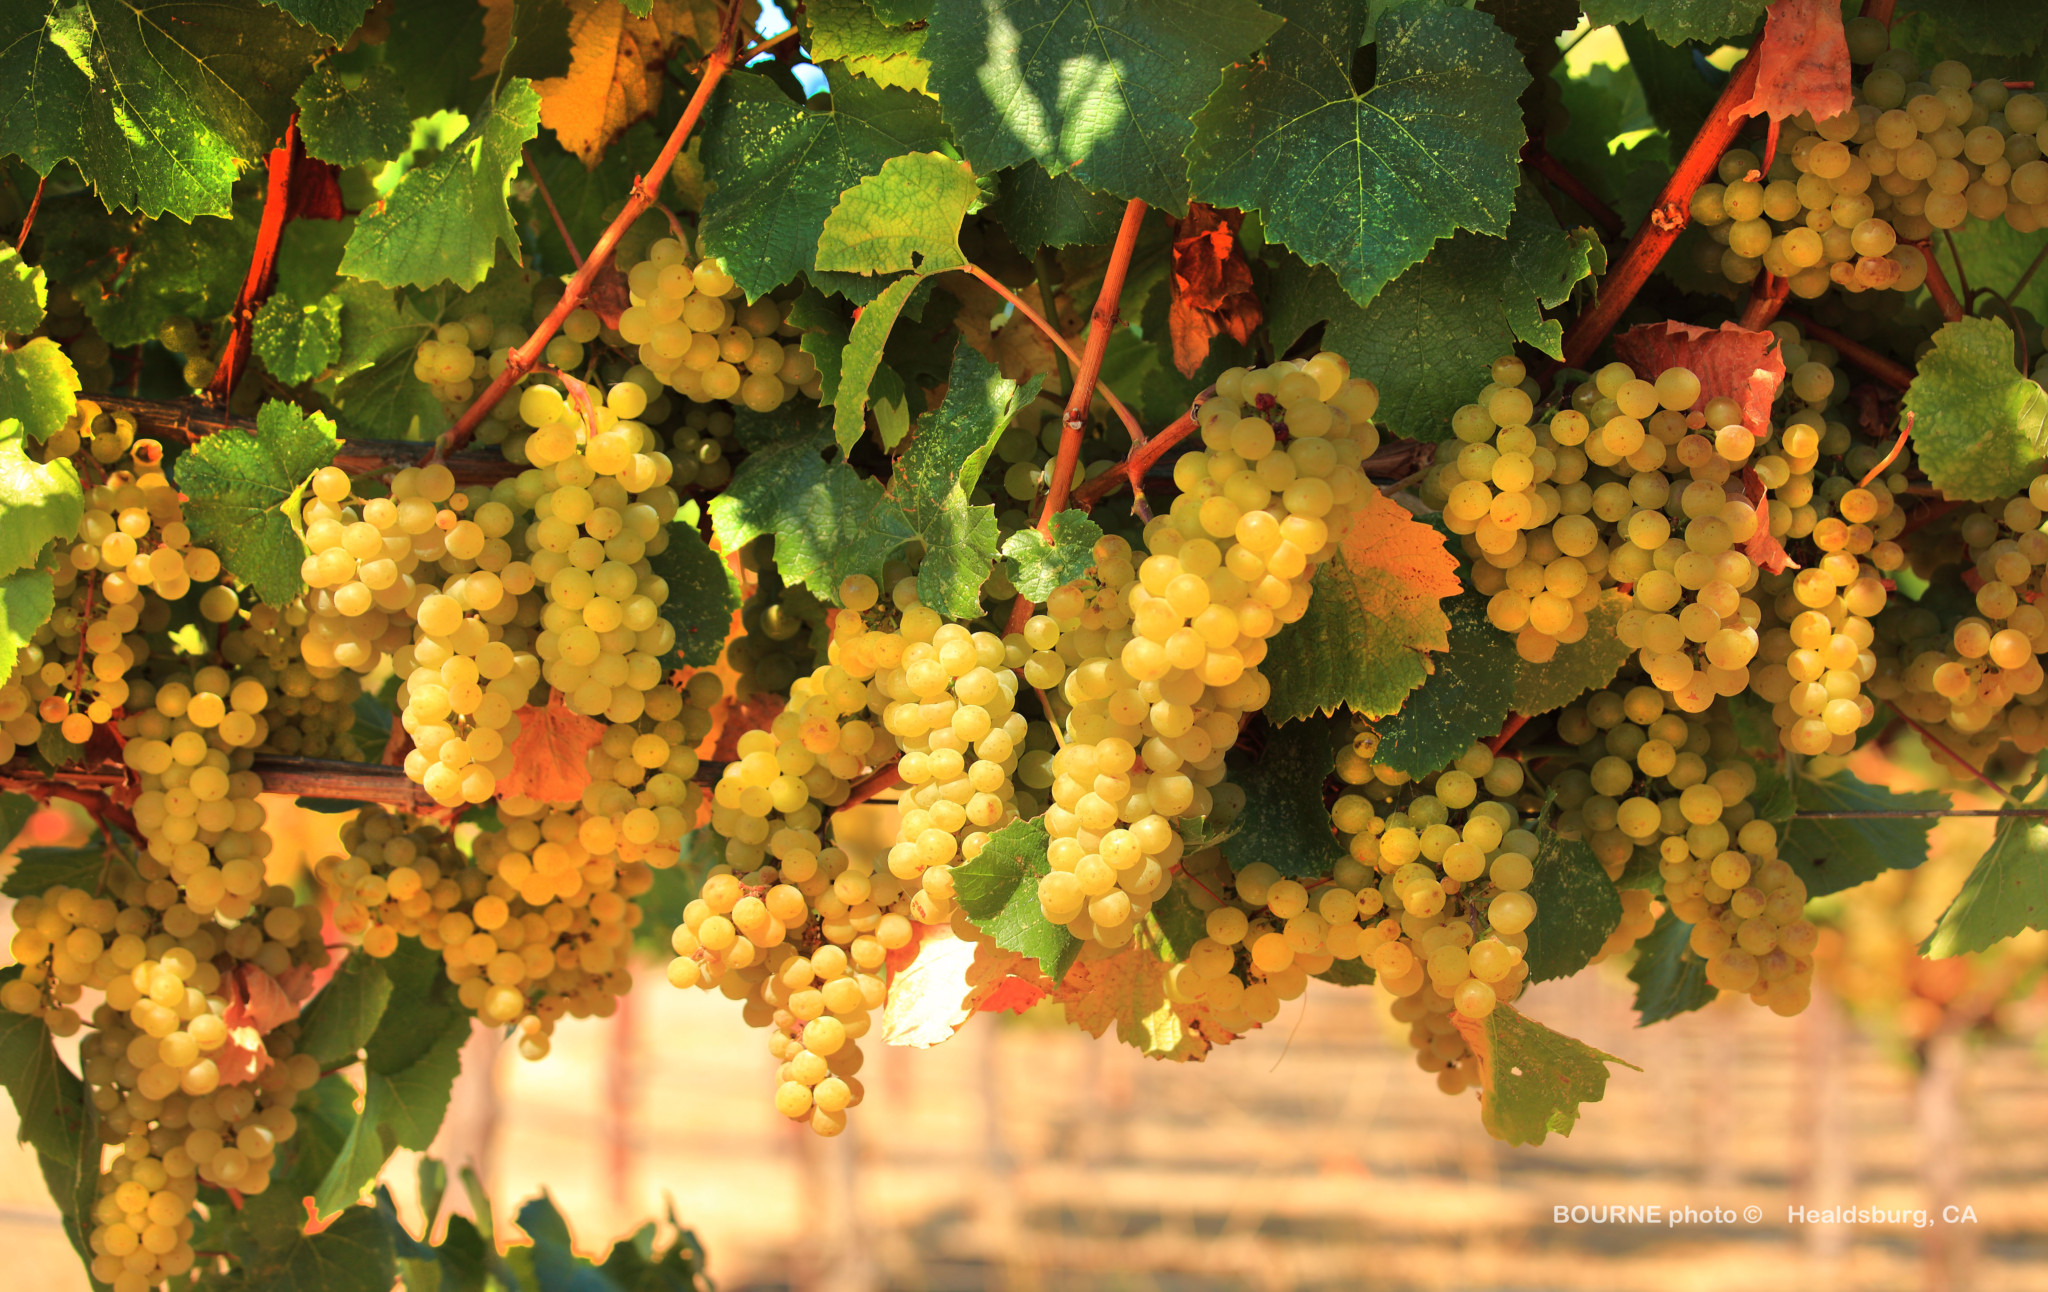 clusters of ripe white grapes